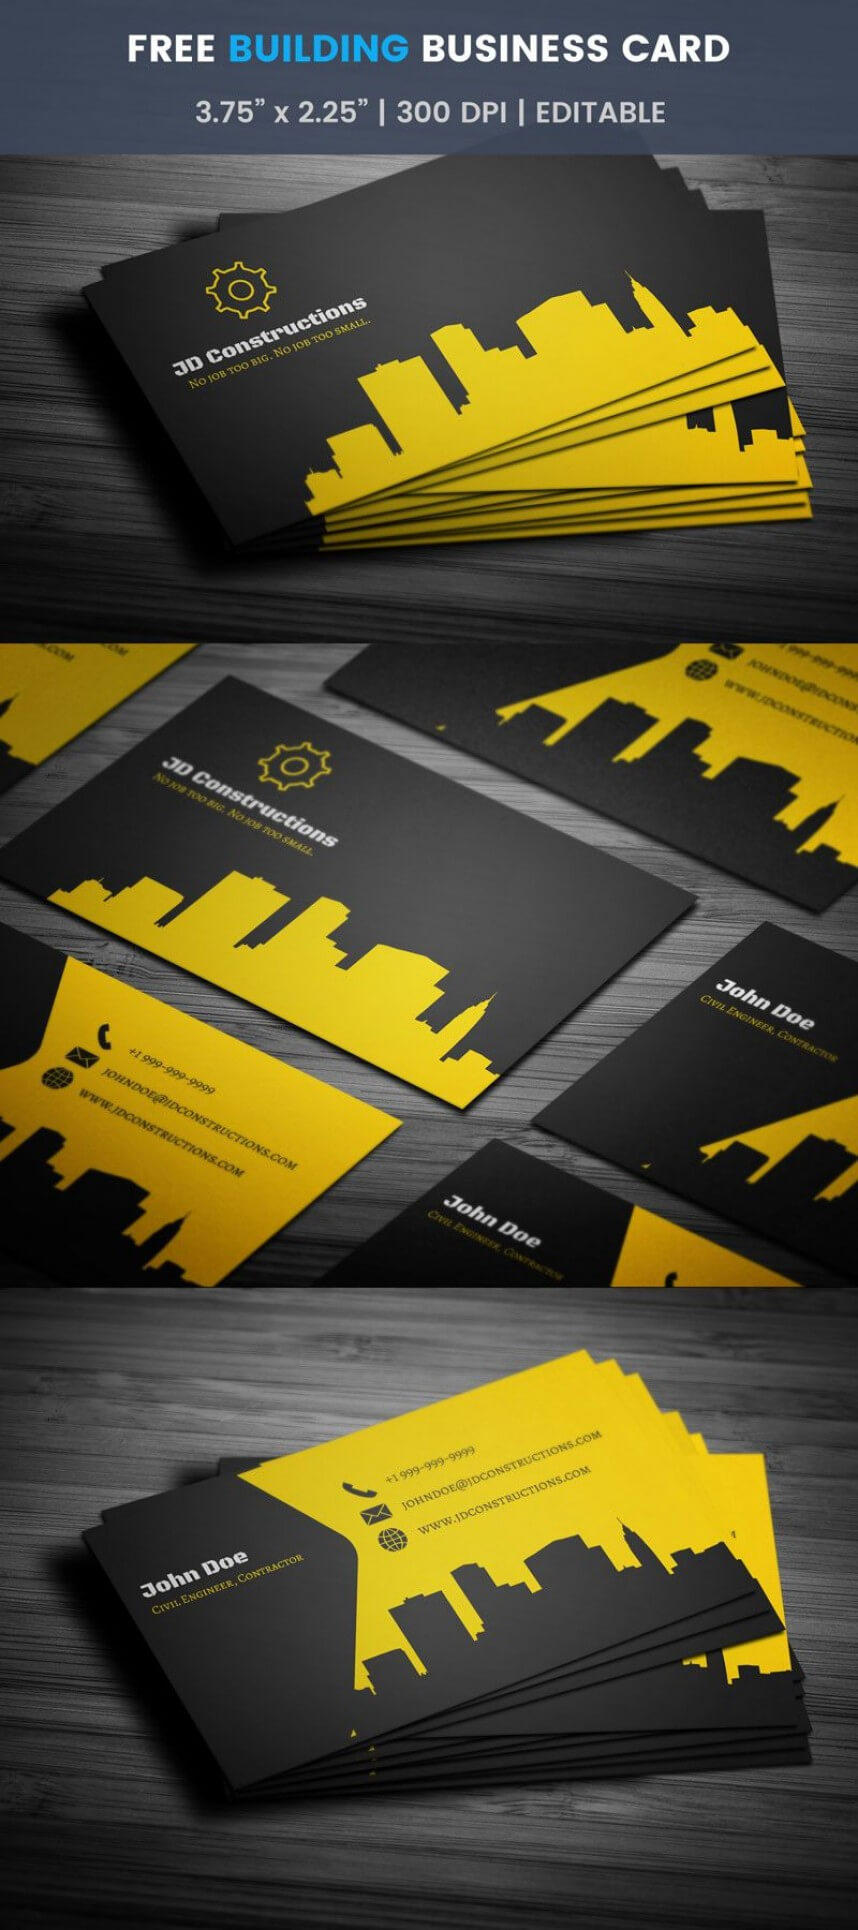 021 Trancprnt Business Card Template Ideas Construction Regarding Construction Business Card Templates Download Free